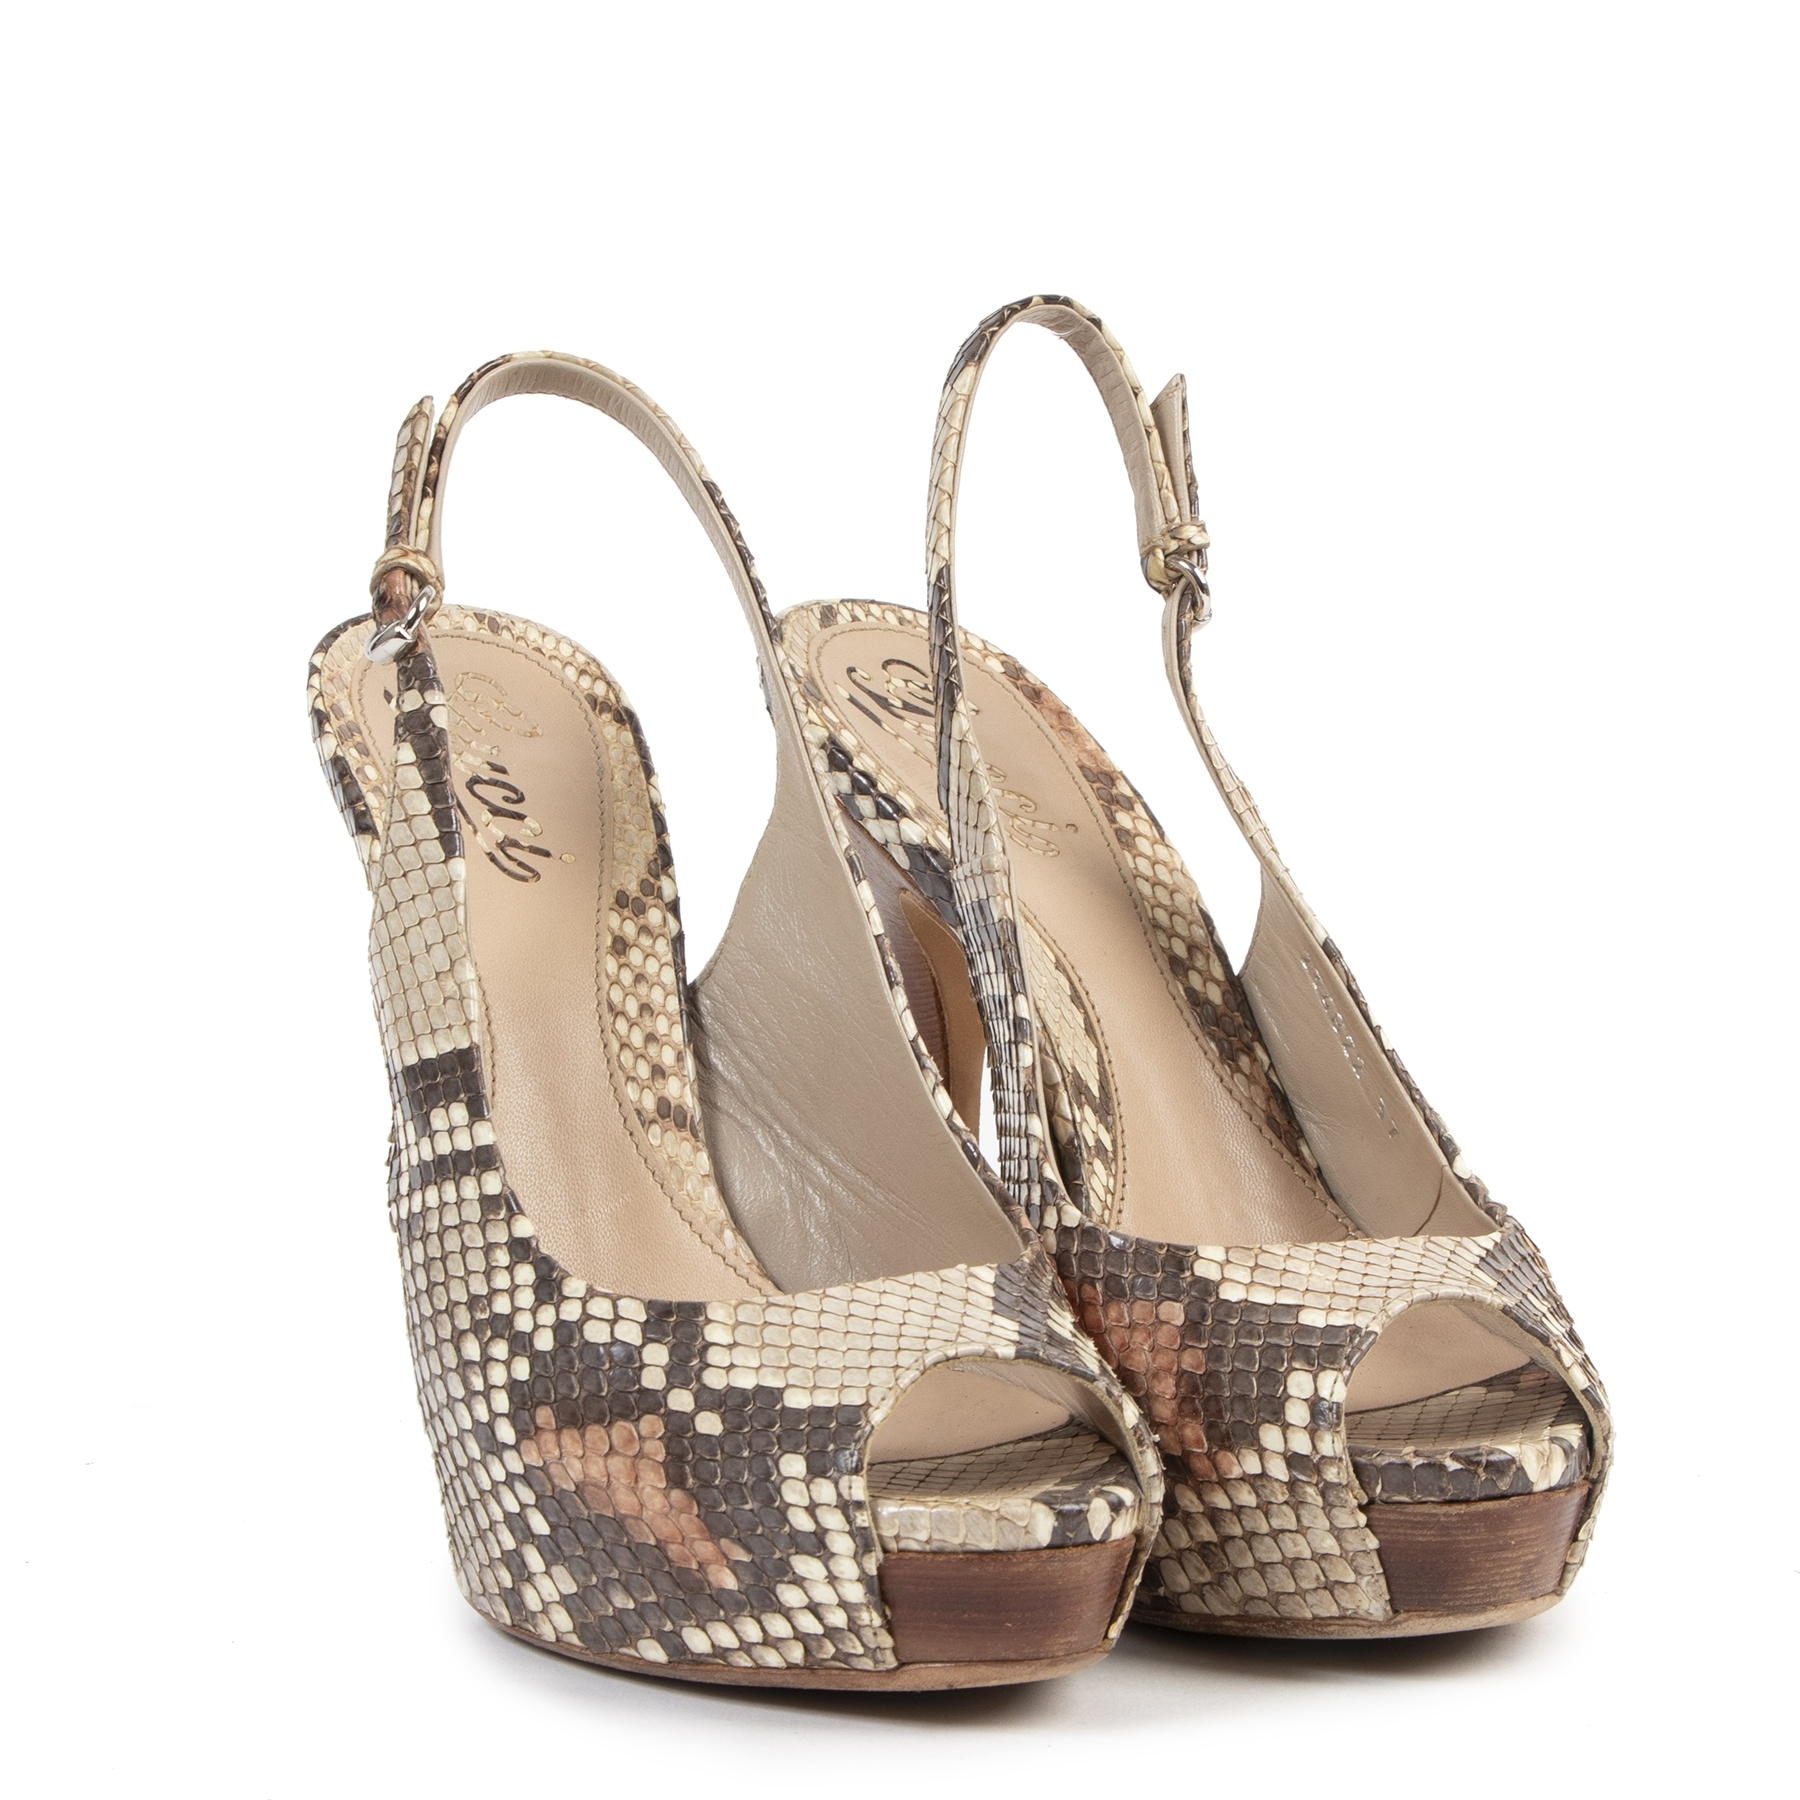 Gucci Brown Snakeskin Peep Toe pumps te koop bij Labellov in Antwerpen